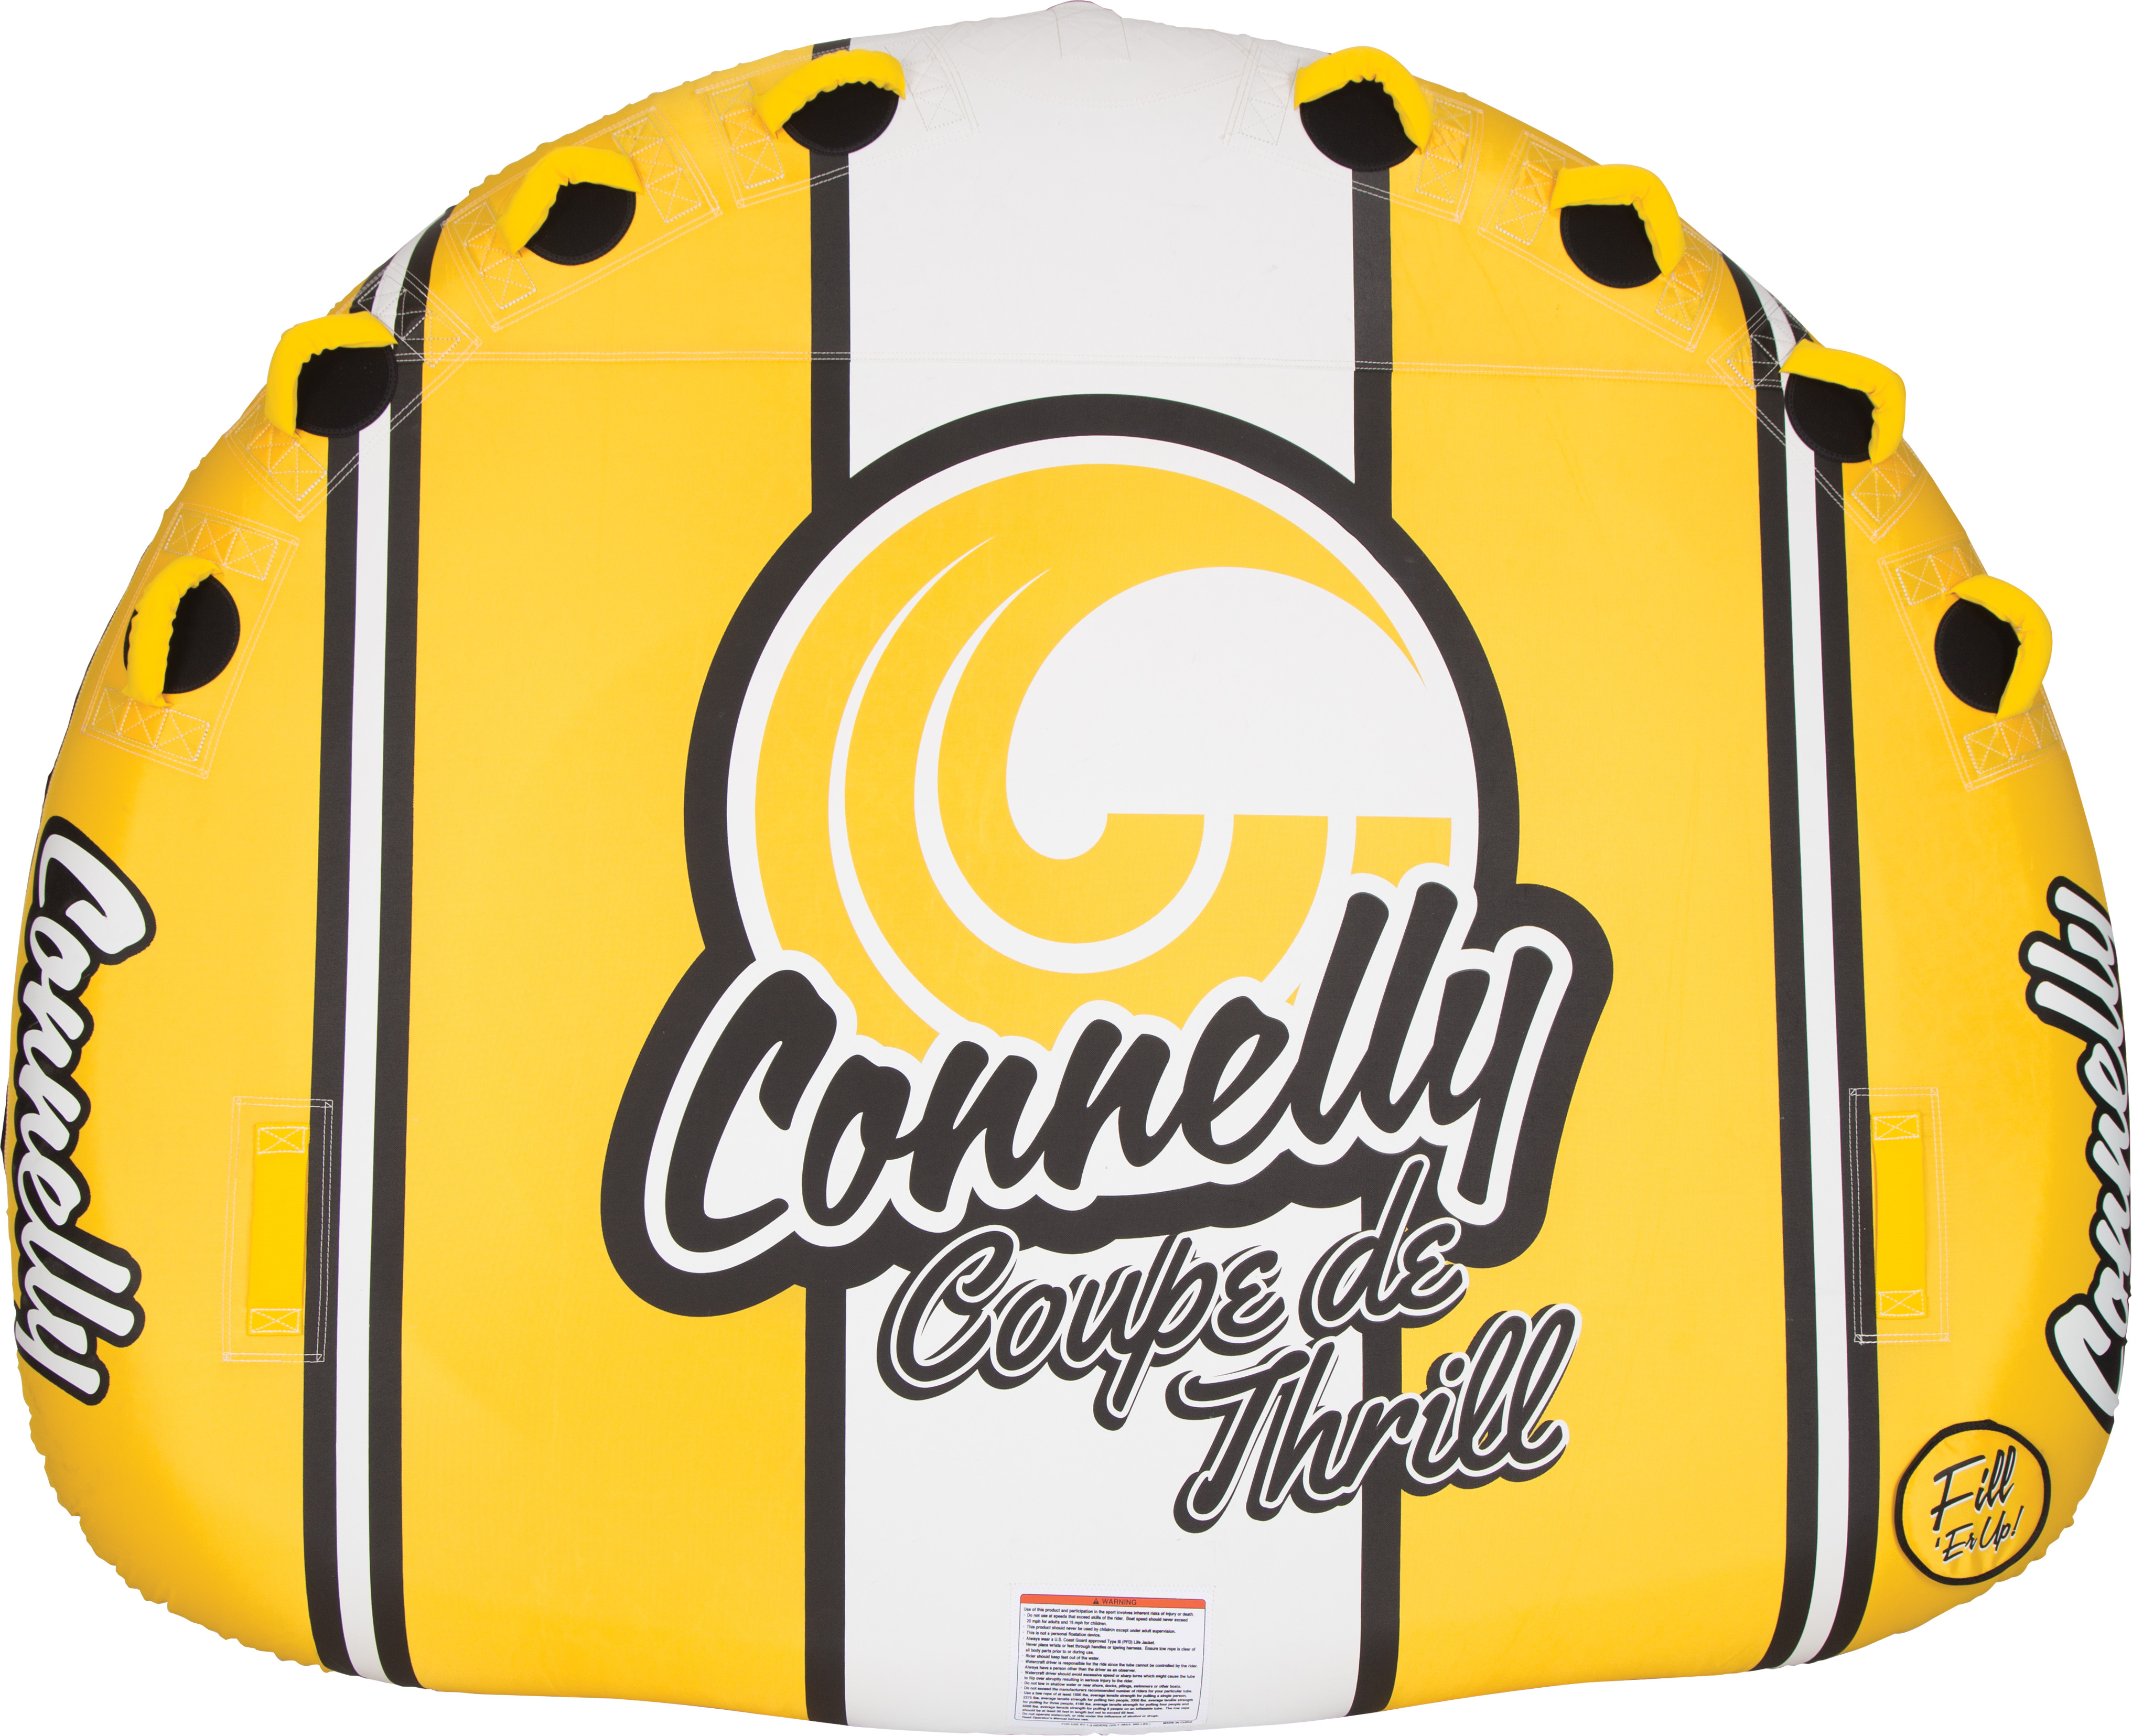 COUPE DE THRILL TOWABLE TUBE CONNELLY 2017